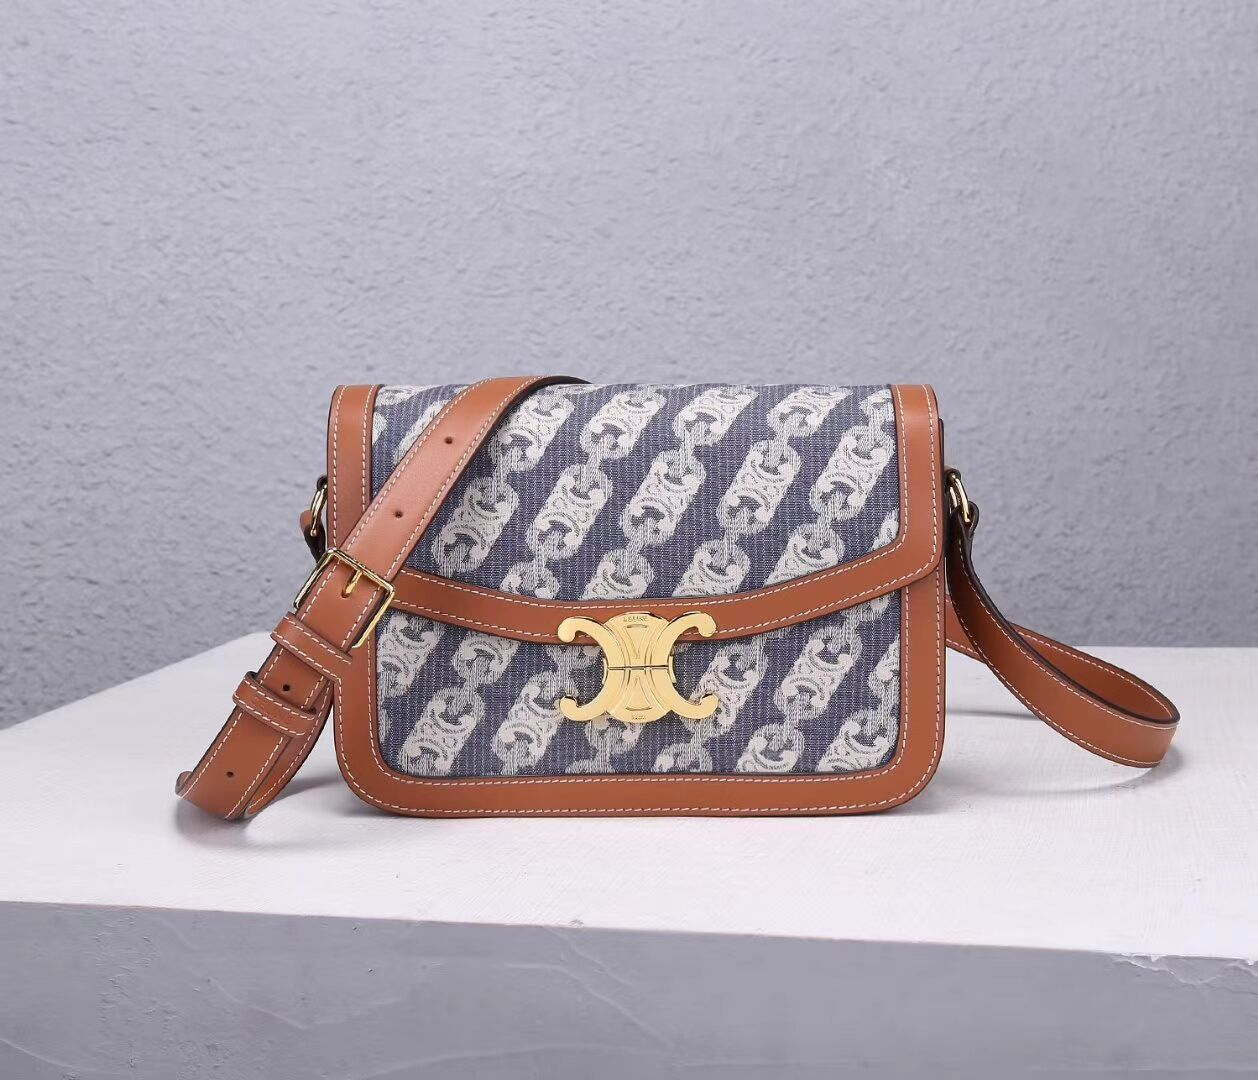 Celine TEEN TRIOMPHE BAG IN TRIOMPHE CANVAS AND CALFSKIN CL87368 blue